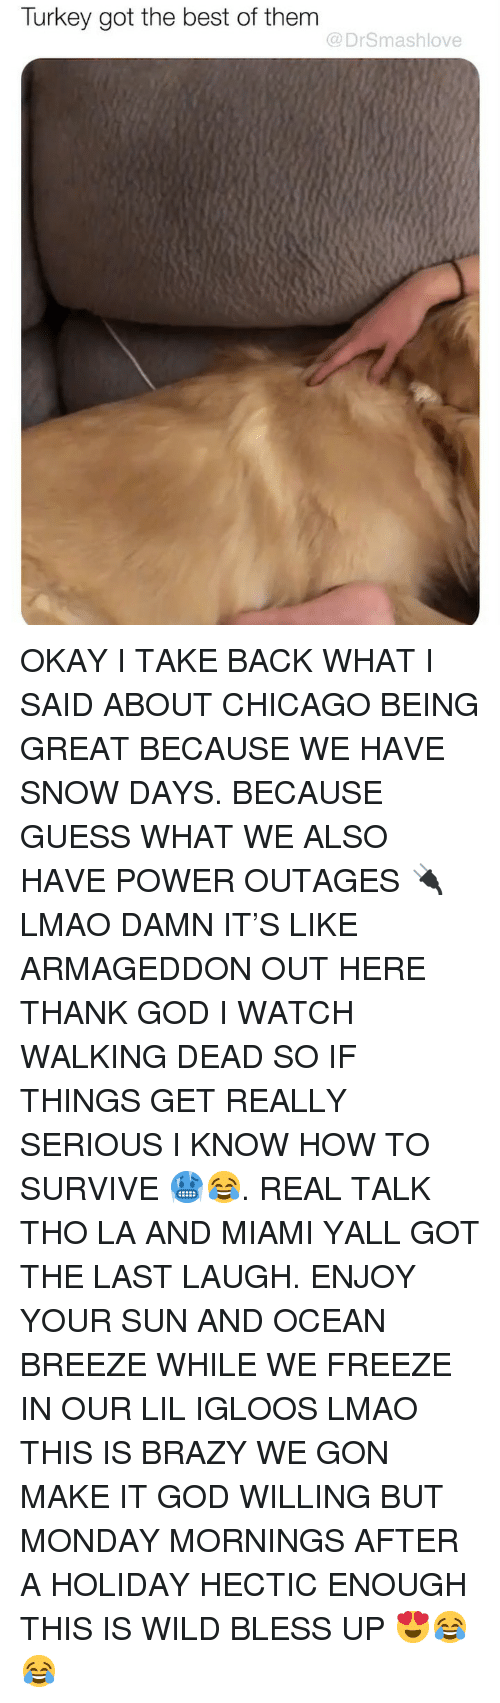 Walking Dead: Turkey got the best of them  @DrSmashlove OKAY I TAKE BACK WHAT I SAID ABOUT CHICAGO BEING GREAT BECAUSE WE HAVE SNOW DAYS. BECAUSE GUESS WHAT WE ALSO HAVE POWER OUTAGES 🔌 LMAO DAMN IT'S LIKE ARMAGEDDON OUT HERE THANK GOD I WATCH WALKING DEAD SO IF THINGS GET REALLY SERIOUS I KNOW HOW TO SURVIVE 🥶😂. REAL TALK THO LA AND MIAMI YALL GOT THE LAST LAUGH. ENJOY YOUR SUN AND OCEAN BREEZE WHILE WE FREEZE IN OUR LIL IGLOOS LMAO THIS IS BRAZY WE GON MAKE IT GOD WILLING BUT MONDAY MORNINGS AFTER A HOLIDAY HECTIC ENOUGH THIS IS WILD BLESS UP 😍😂😂